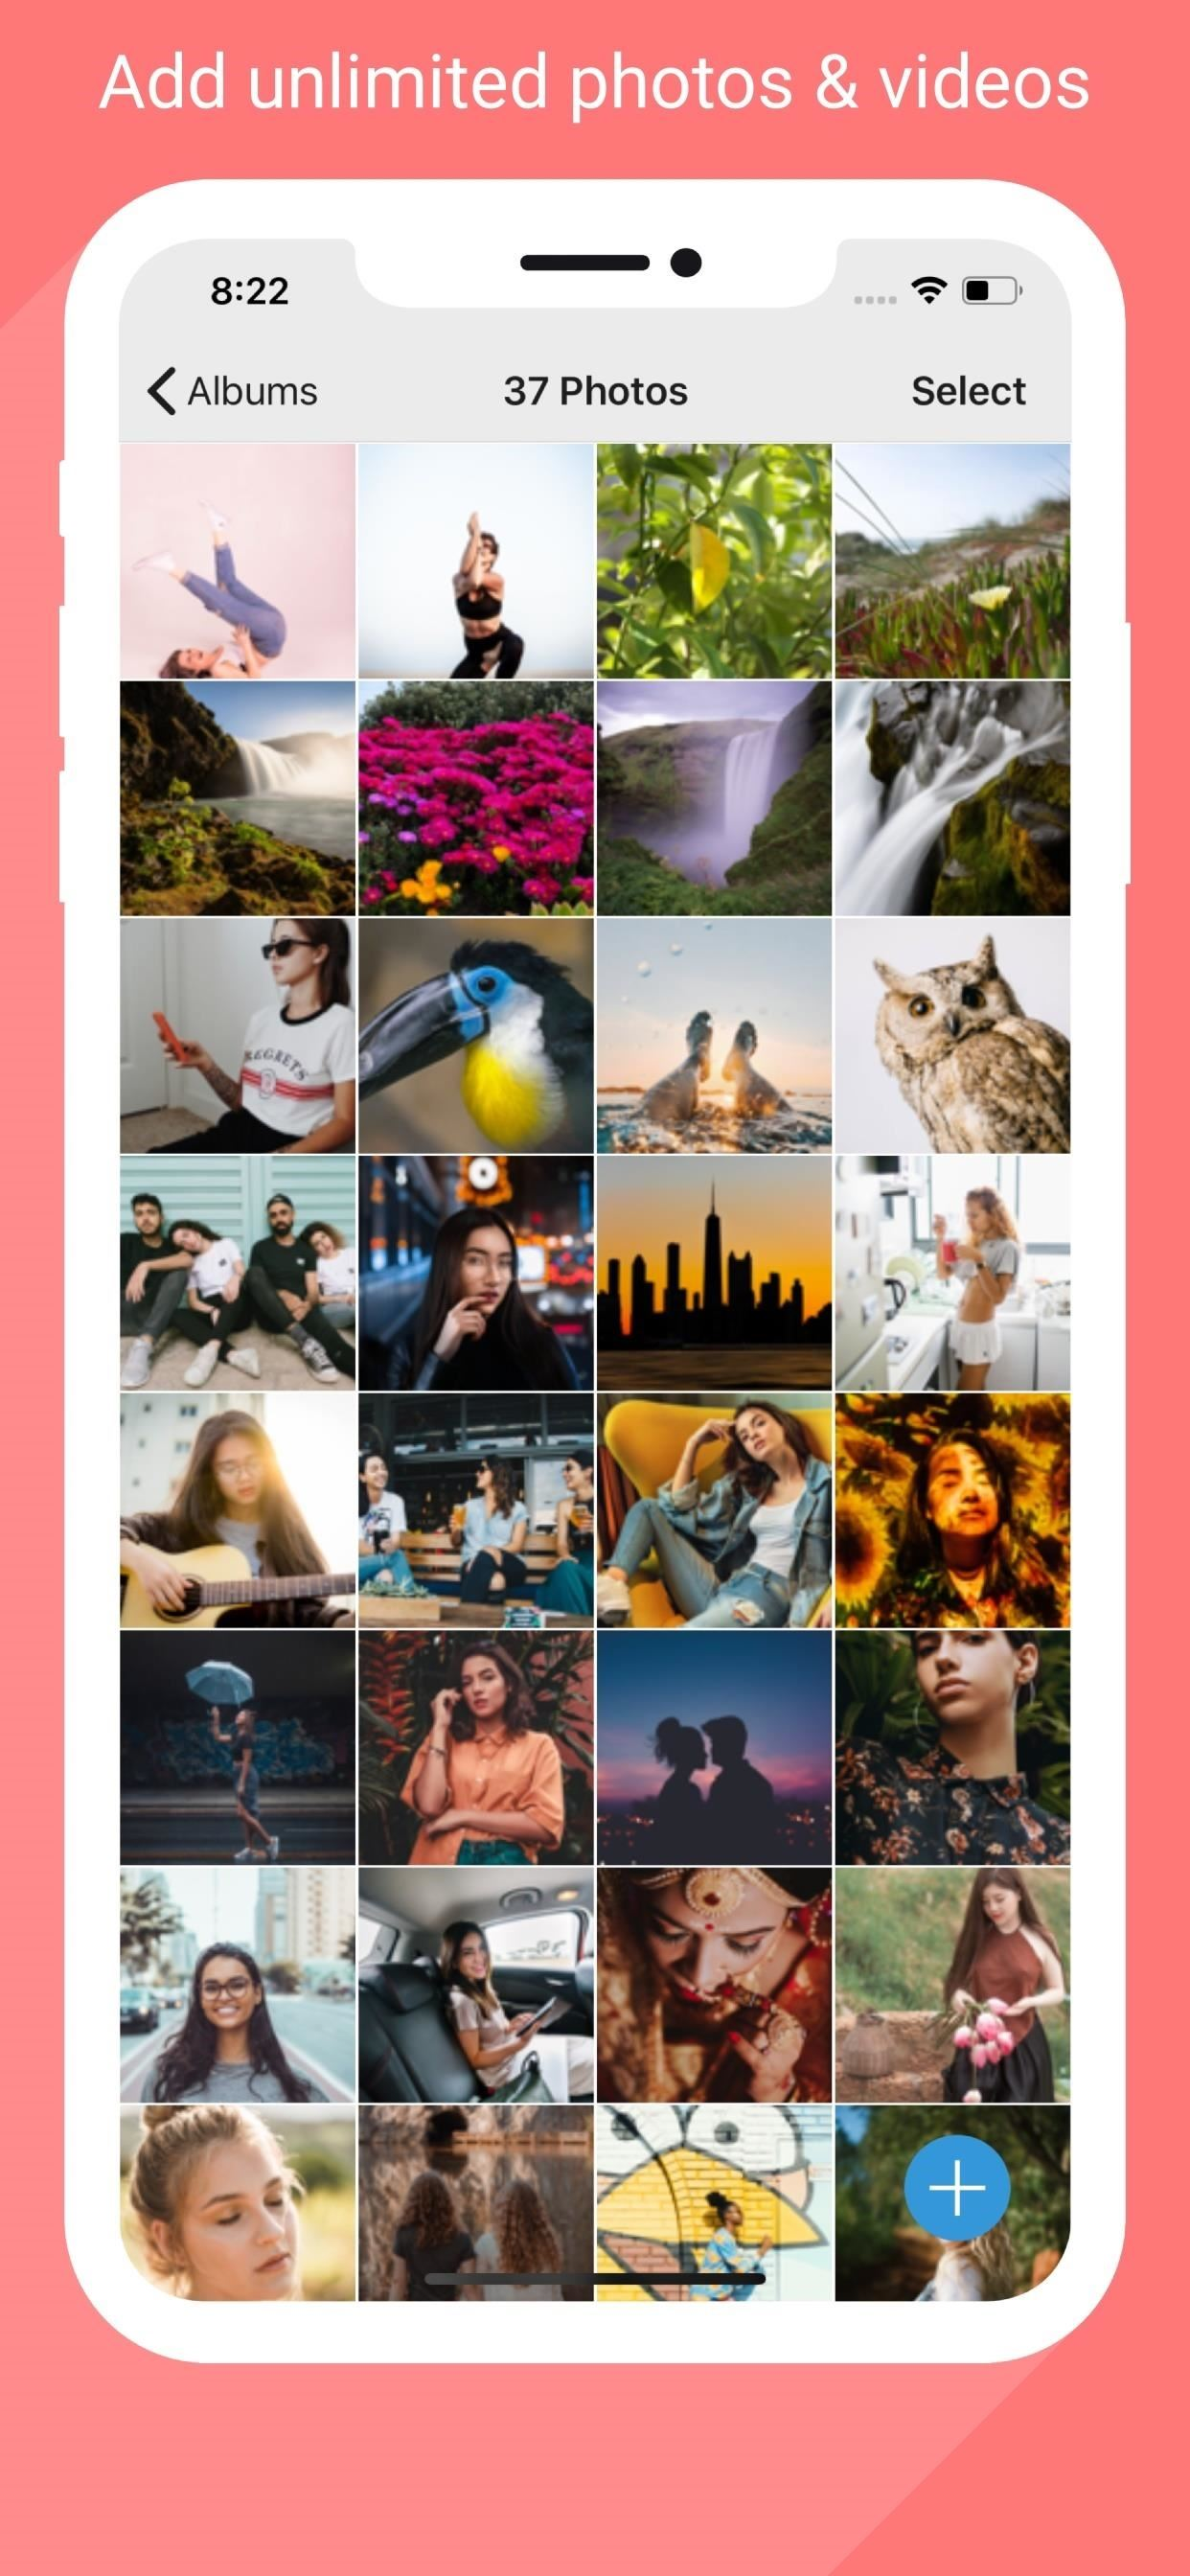 Ultra Lock - a Photo & Video Vault iOS App with a Lot of Unique Lock Options Like TimePIN, DatePIN, BatteryPIN